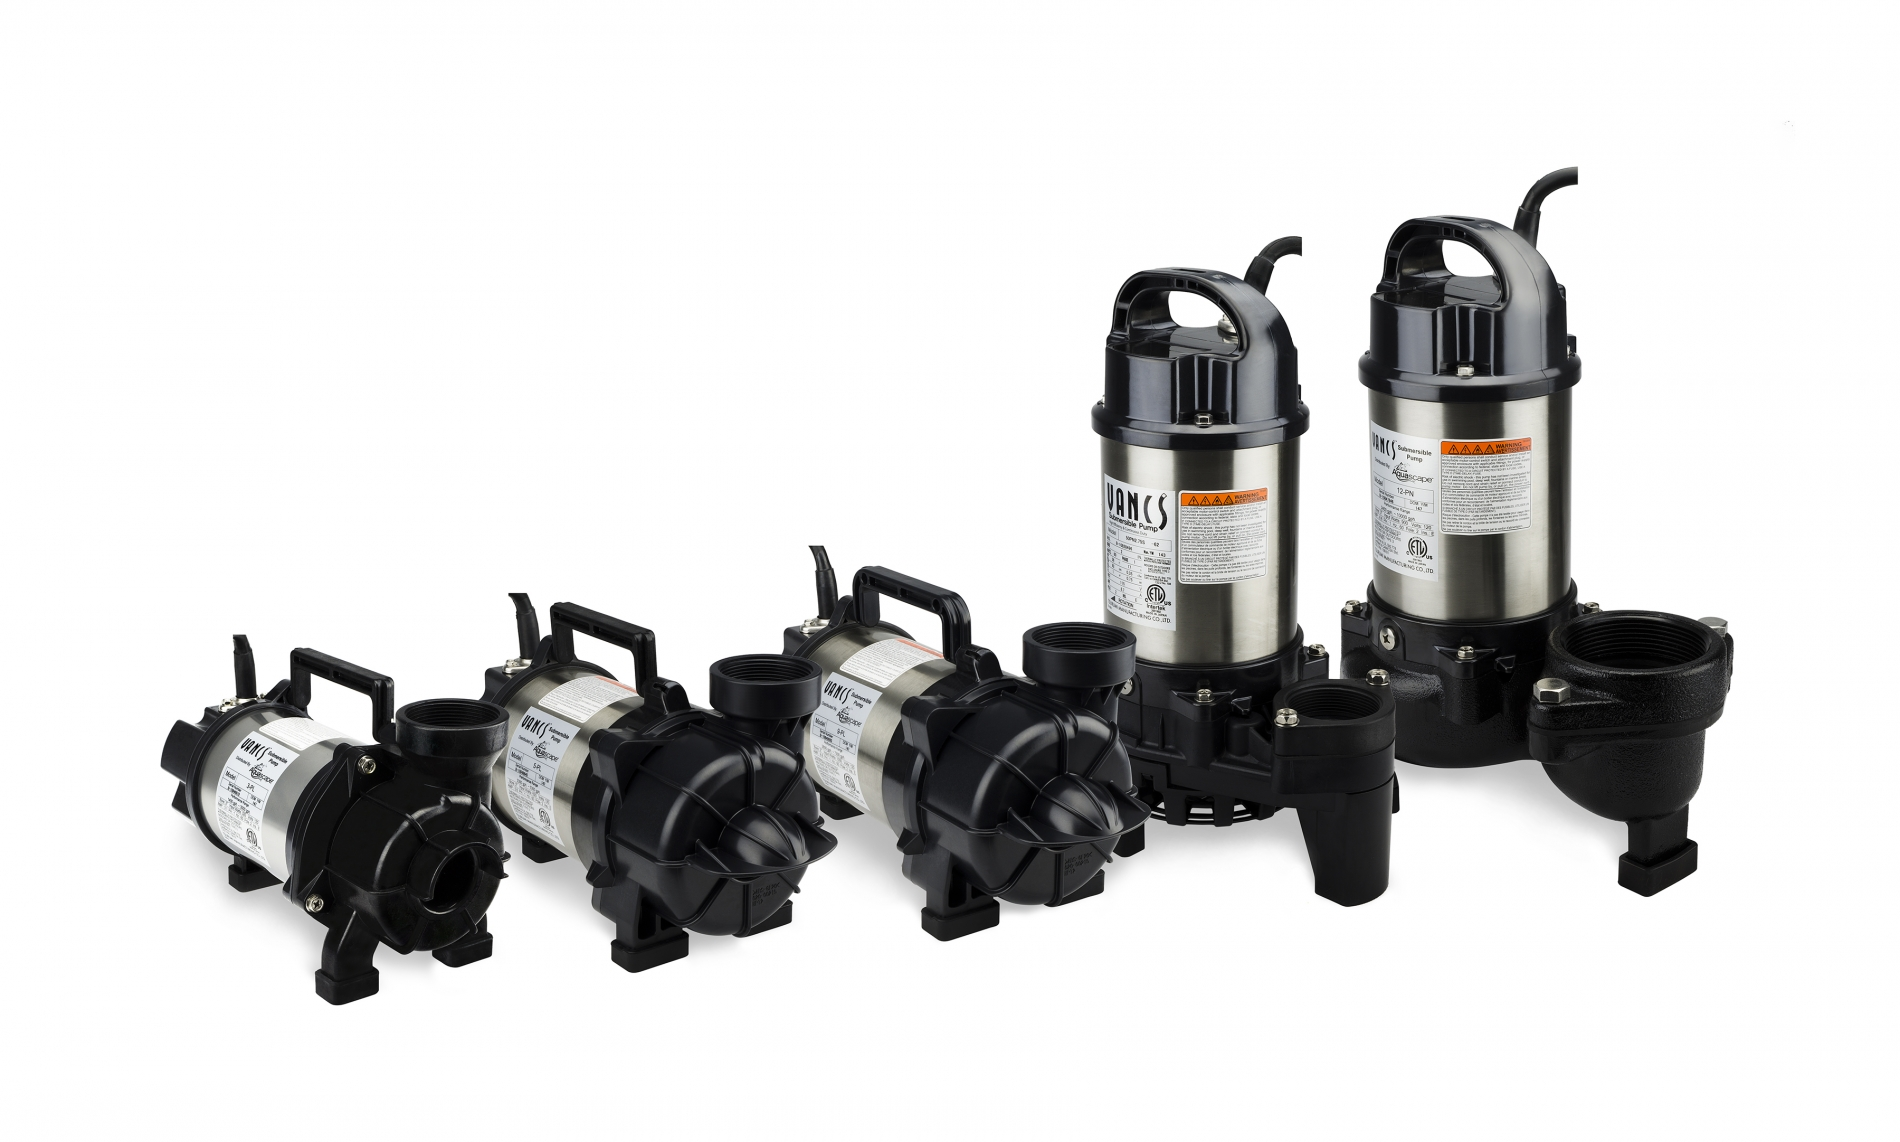 Pond pumps pond water pumps waterfall pumps tsurumi pump for Pond equipment